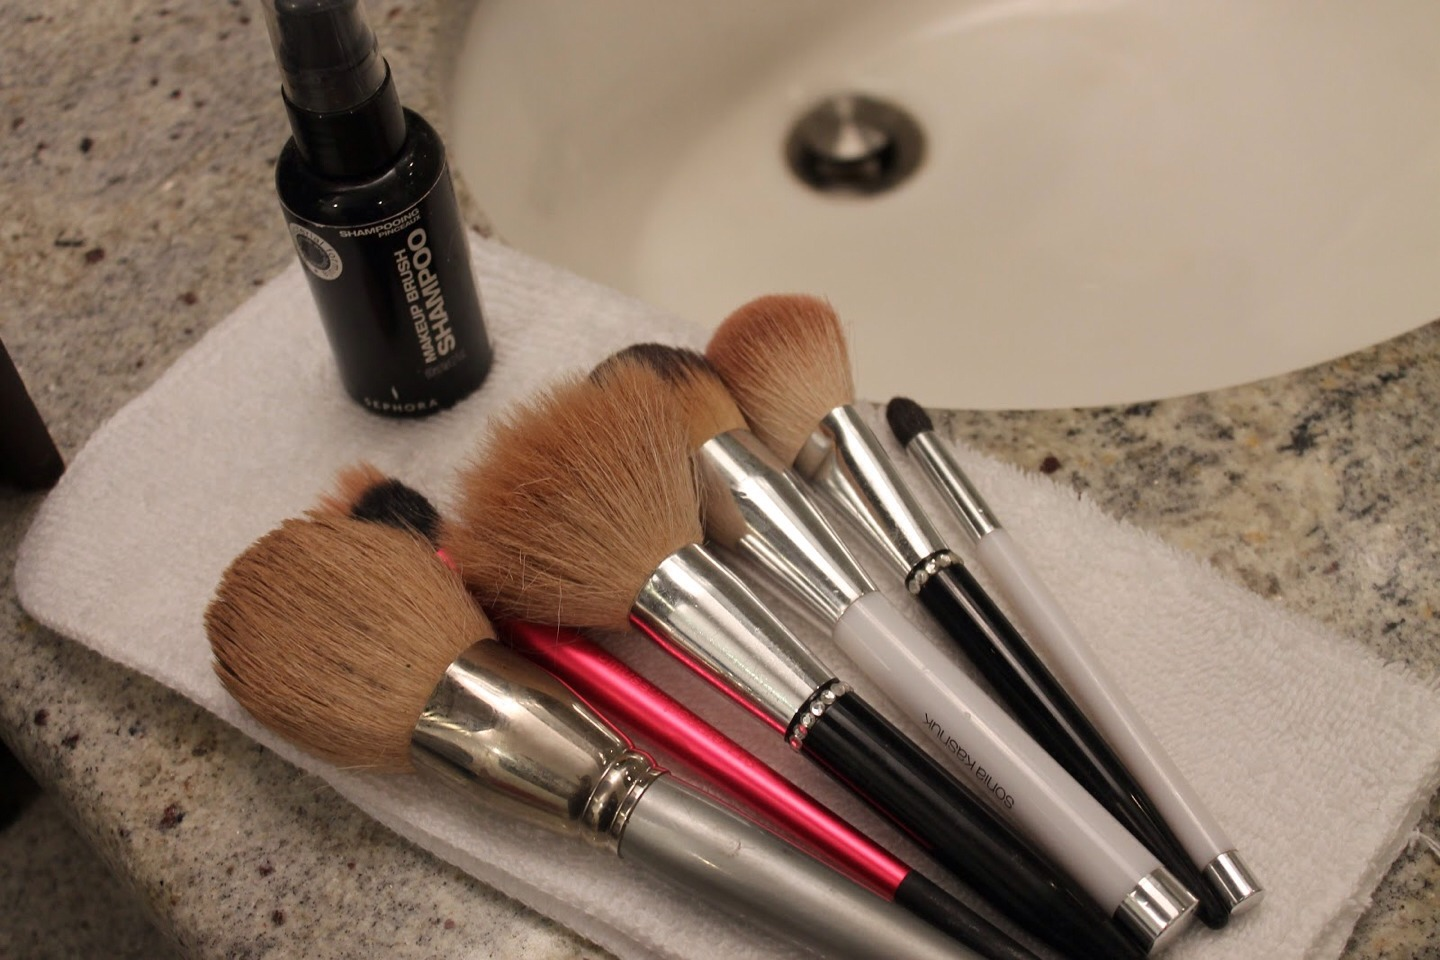 5. Lastly lay your brushes flat on the cloth to dry.